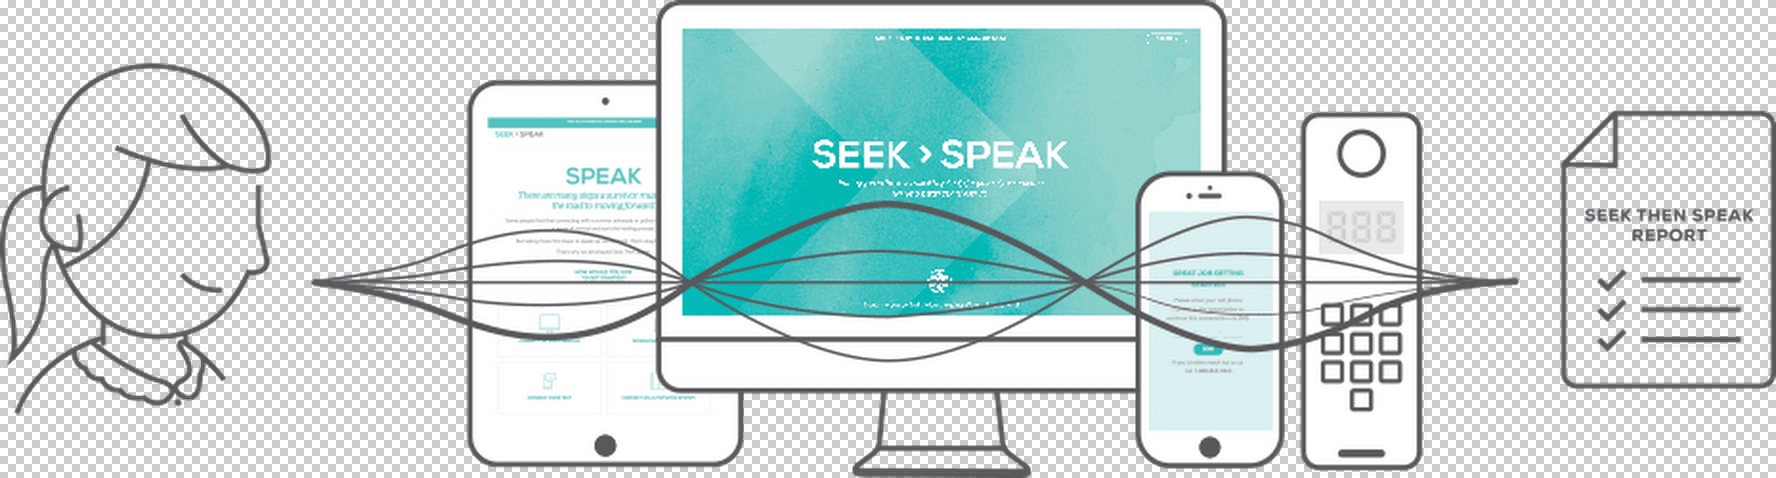 Seek Then Speak